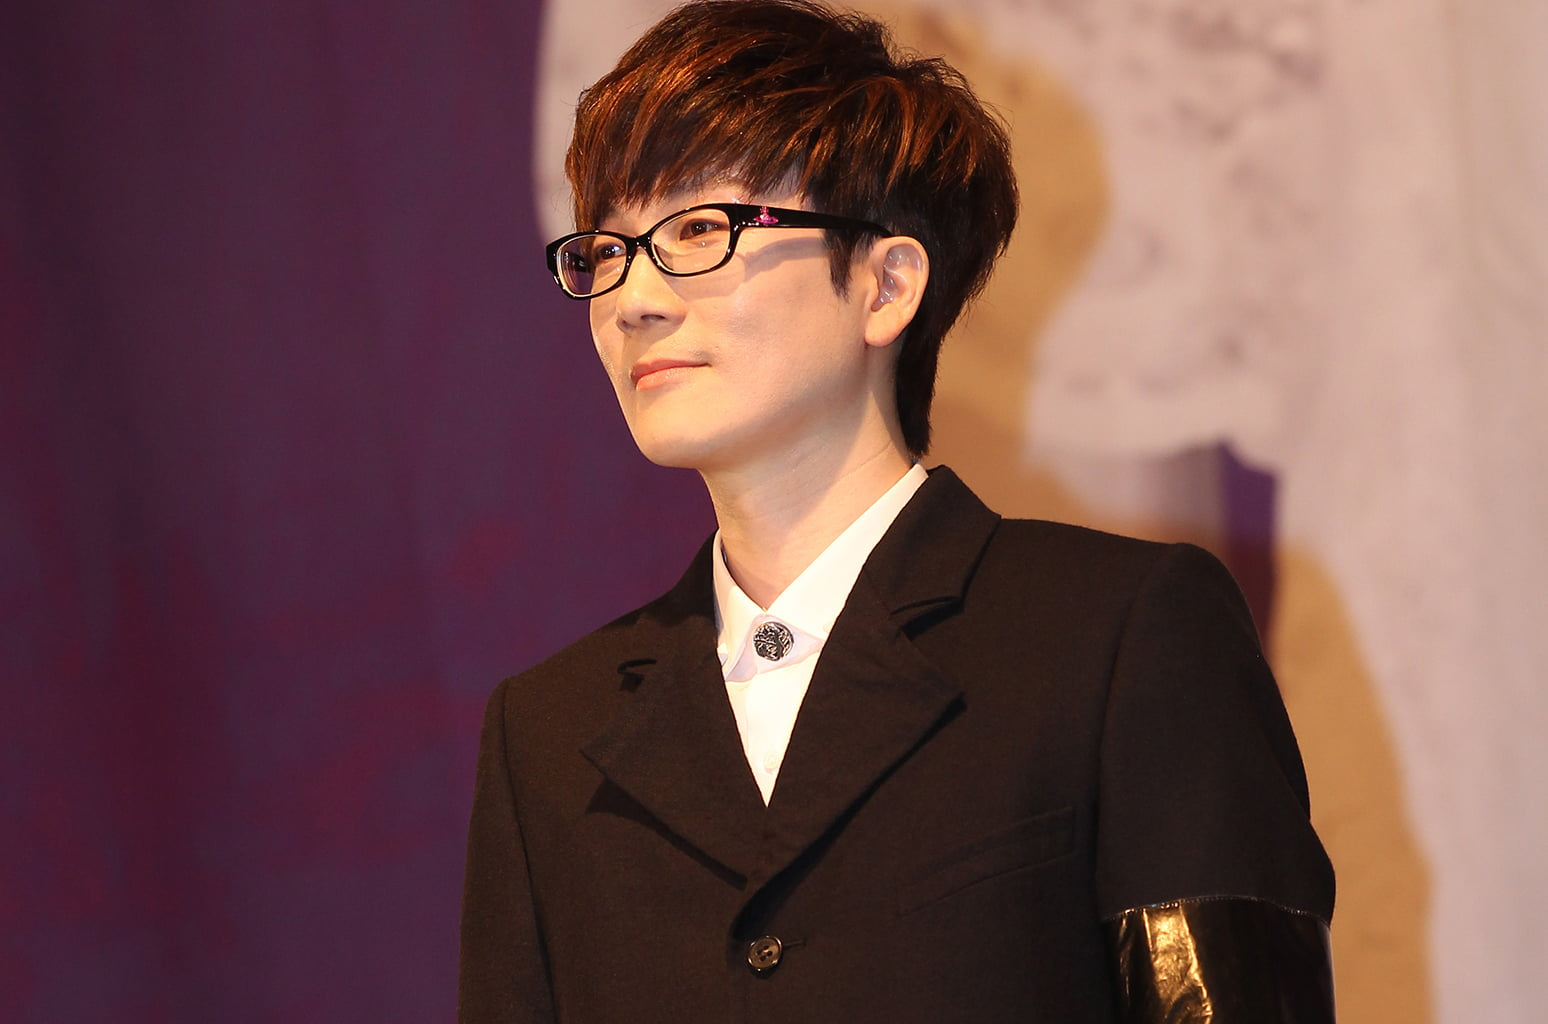 K-Pop Legend Seo Taiji Holds 25th Anniversary Concert, Passes Torch to BTS